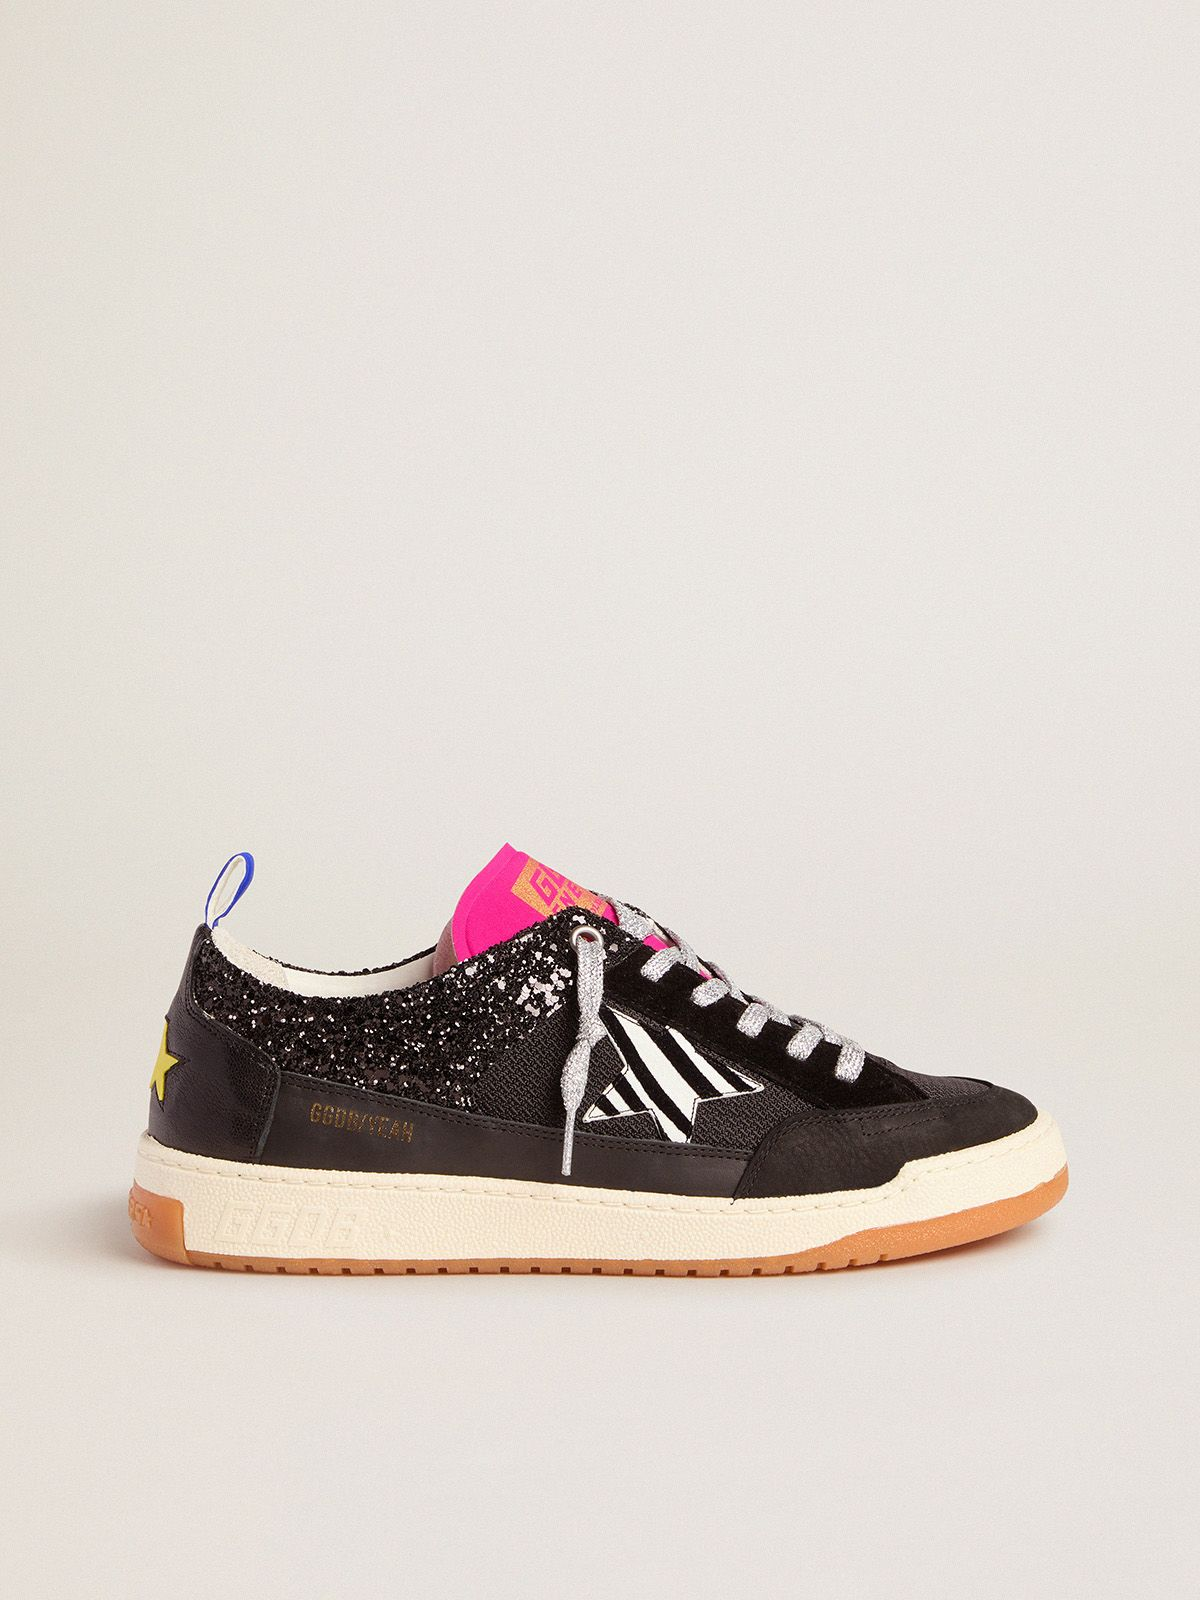 Men's black Yeah sneakers with glitter and zebra-print star